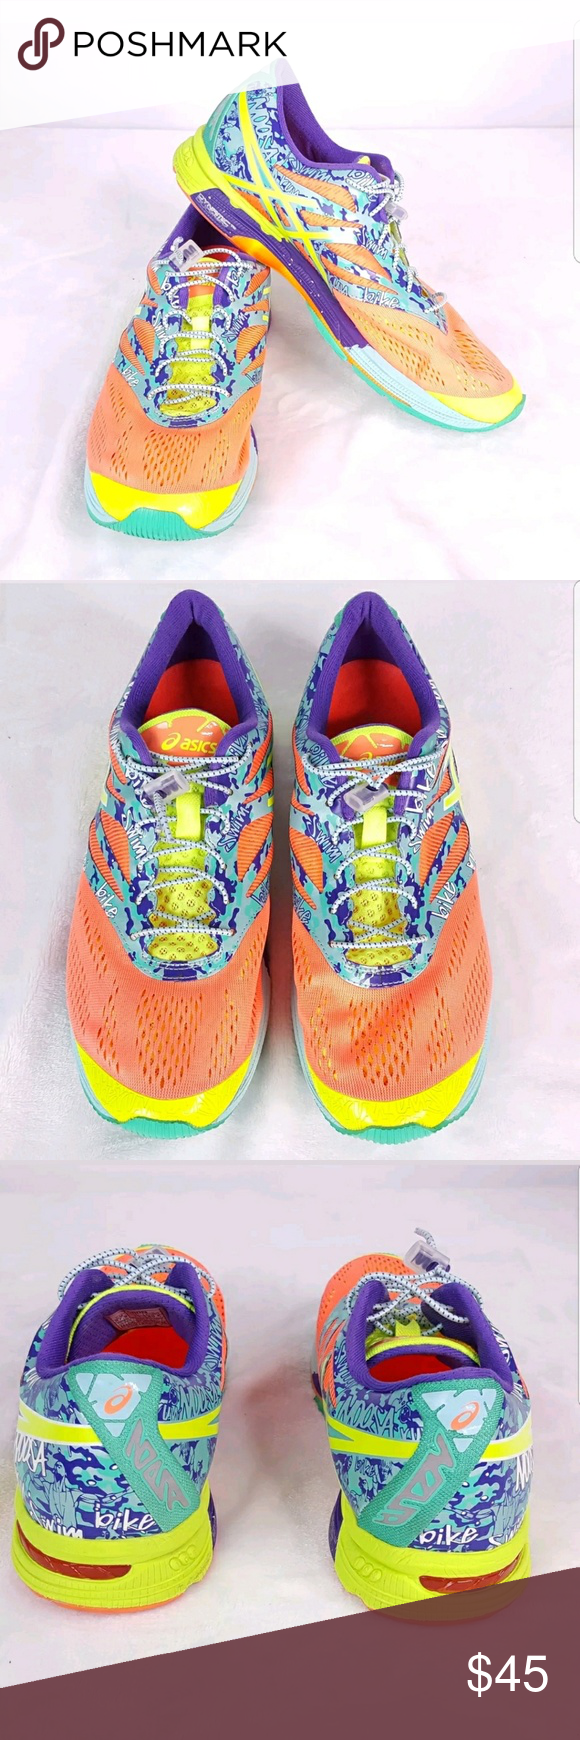 buy online 58a15 f9c73 Asics Gel- Noosa Tri 10 Size 11 Running Shoes Asics Gel-Noosa Tri 10